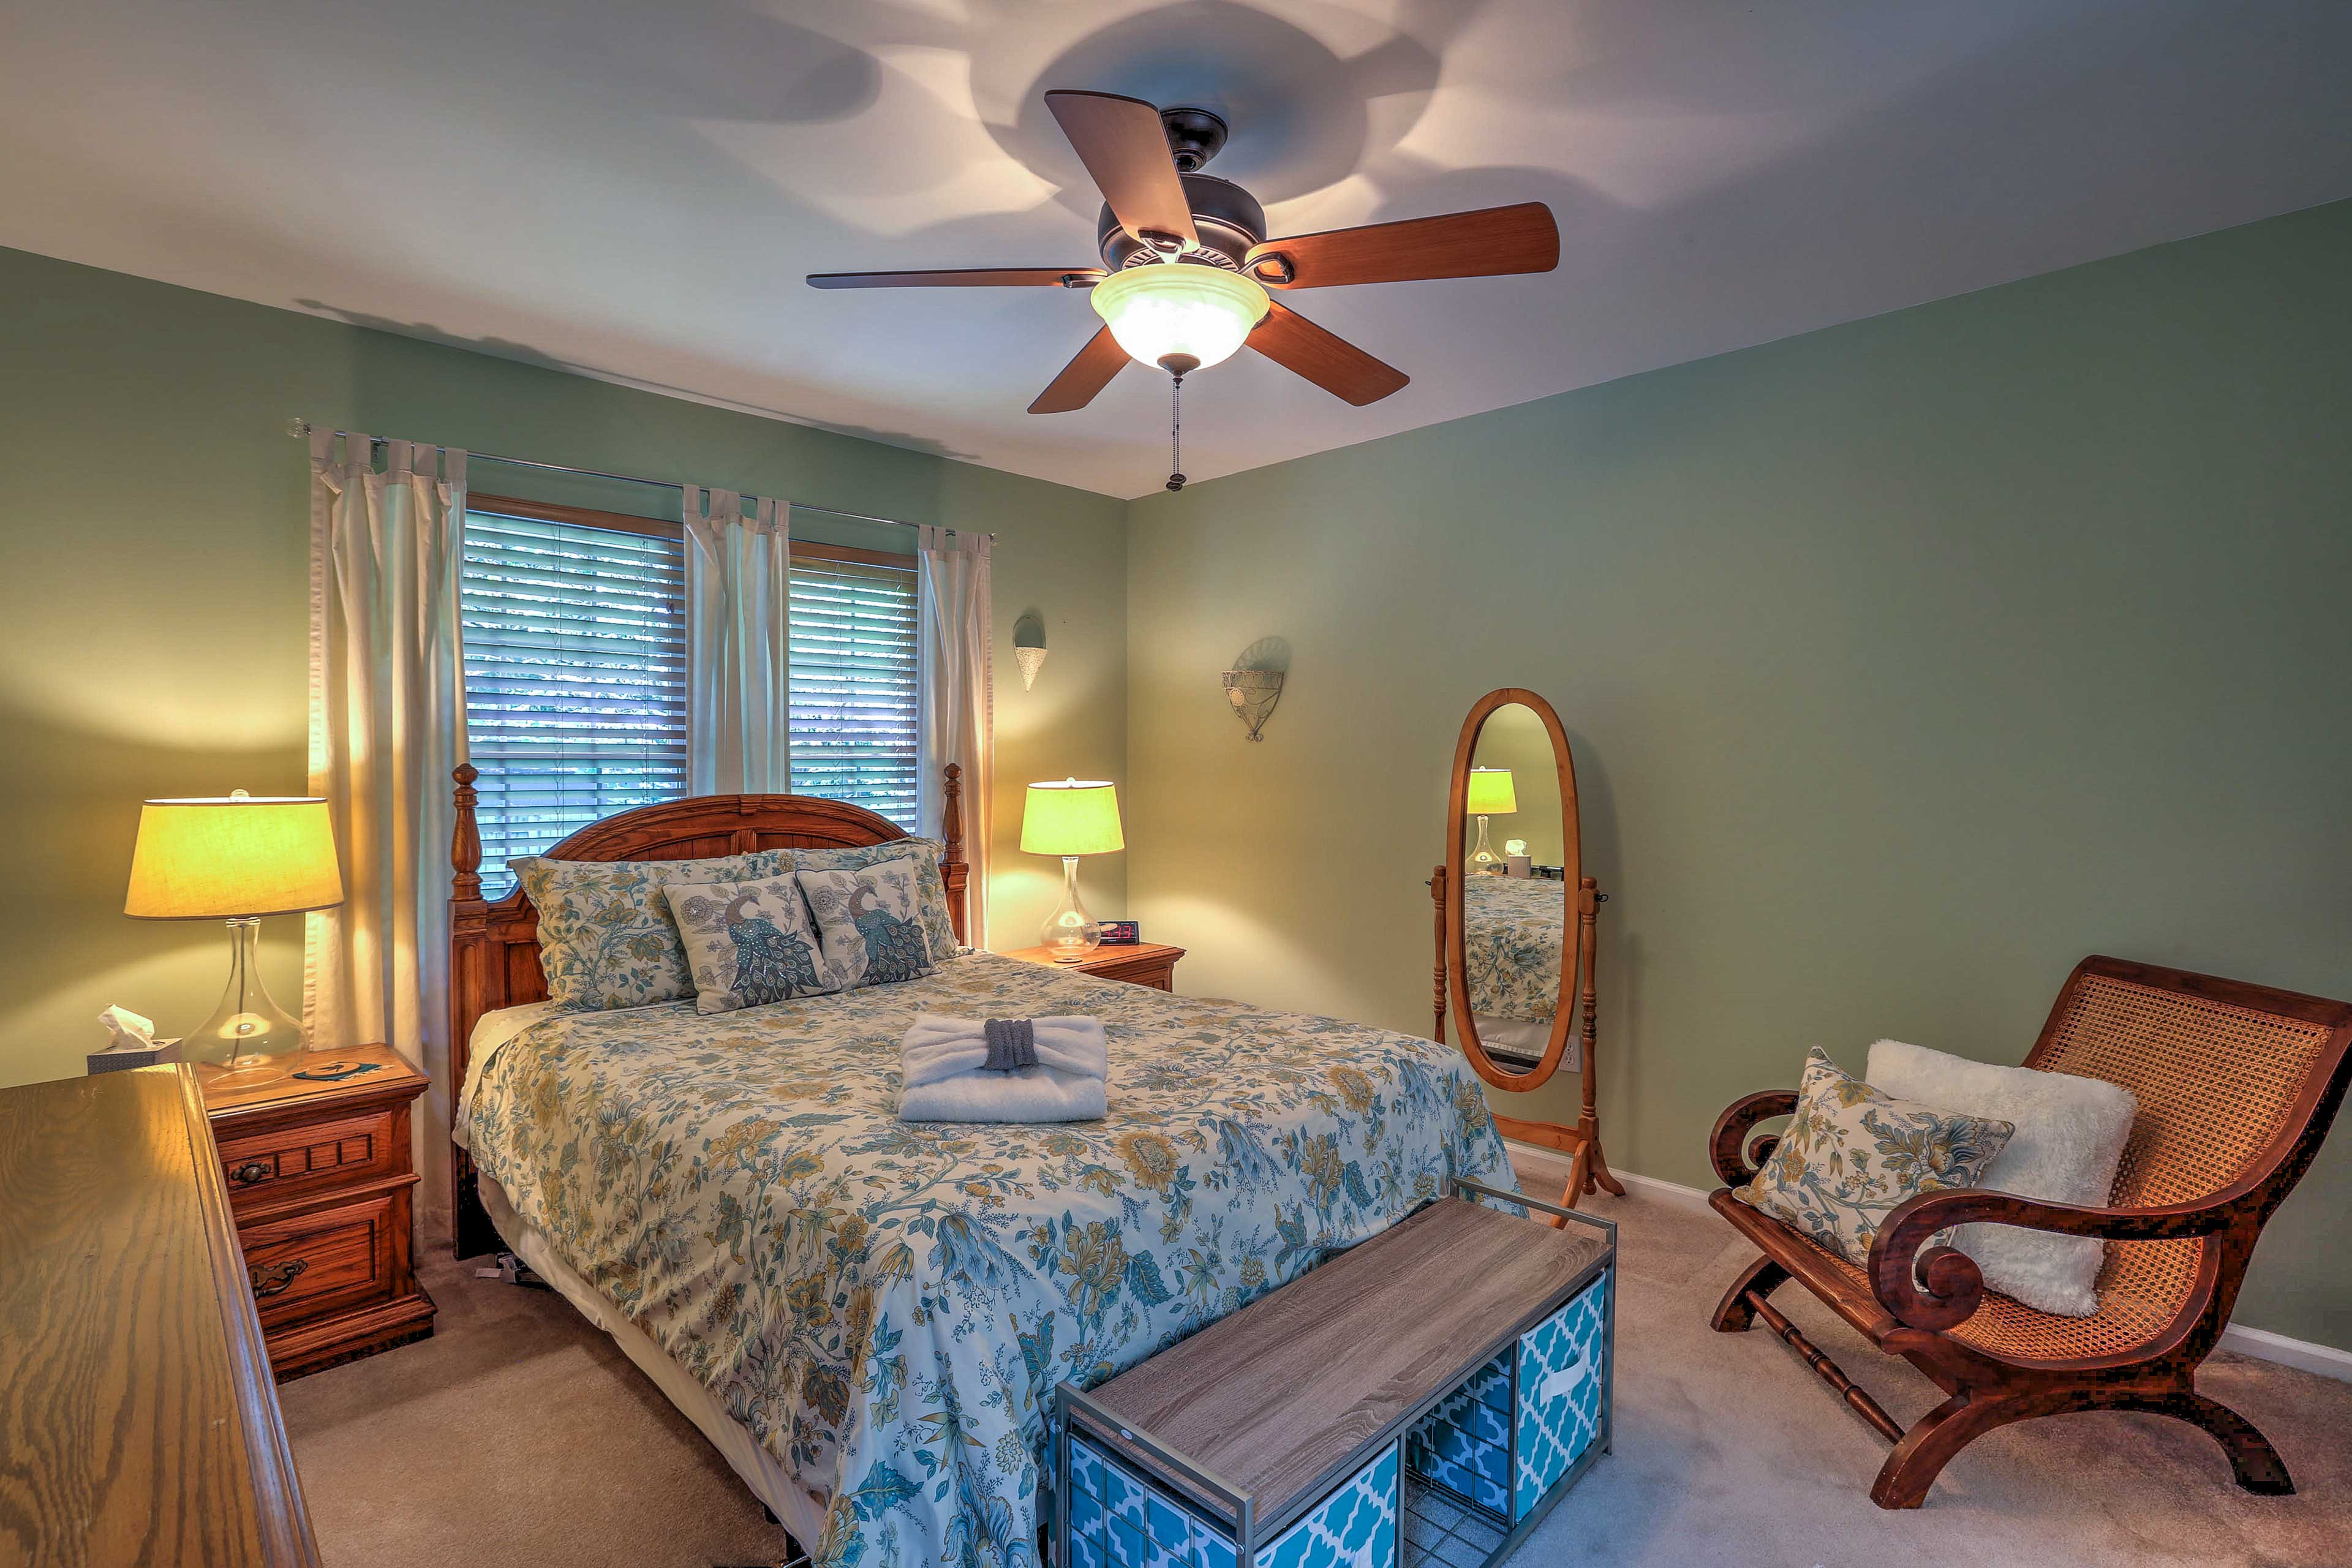 The master bedroom provides access to an en-suite bathroom.